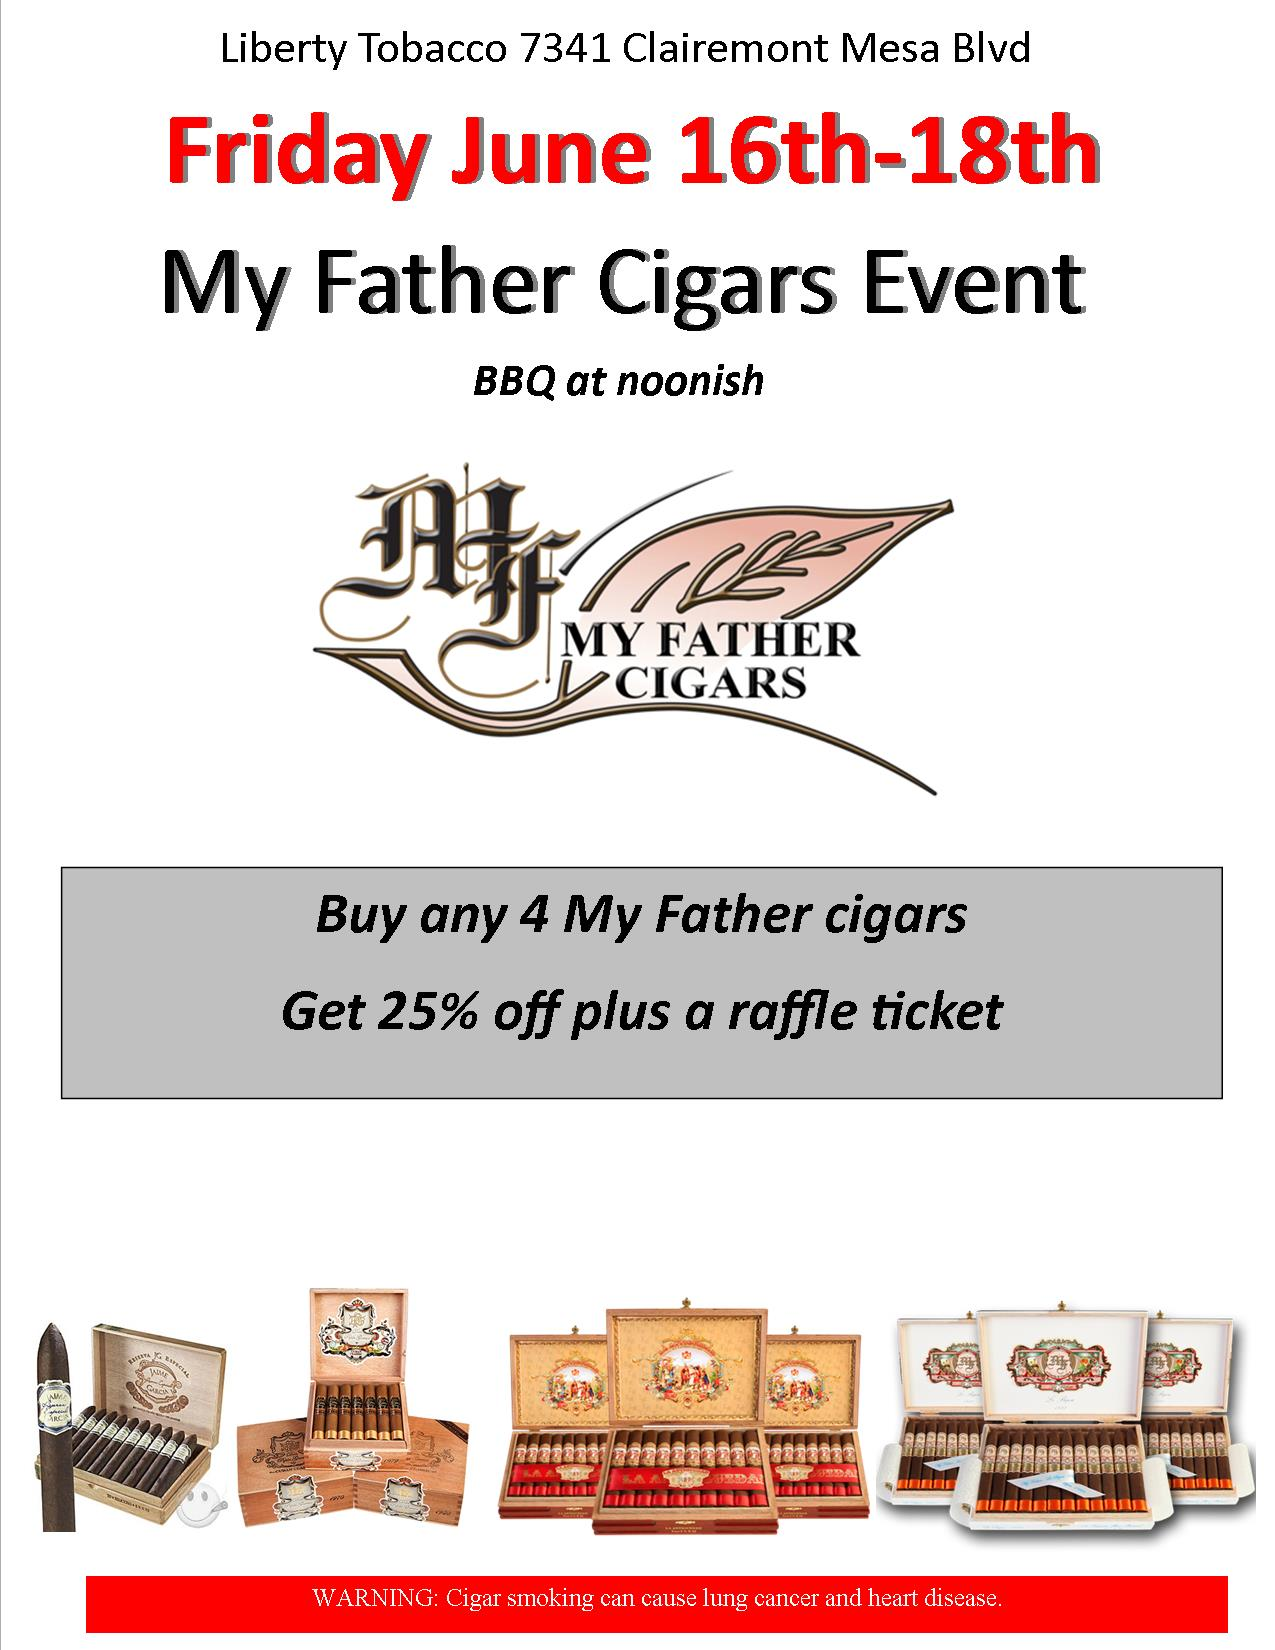 My Father Cigars Event at Liberty Tobacco